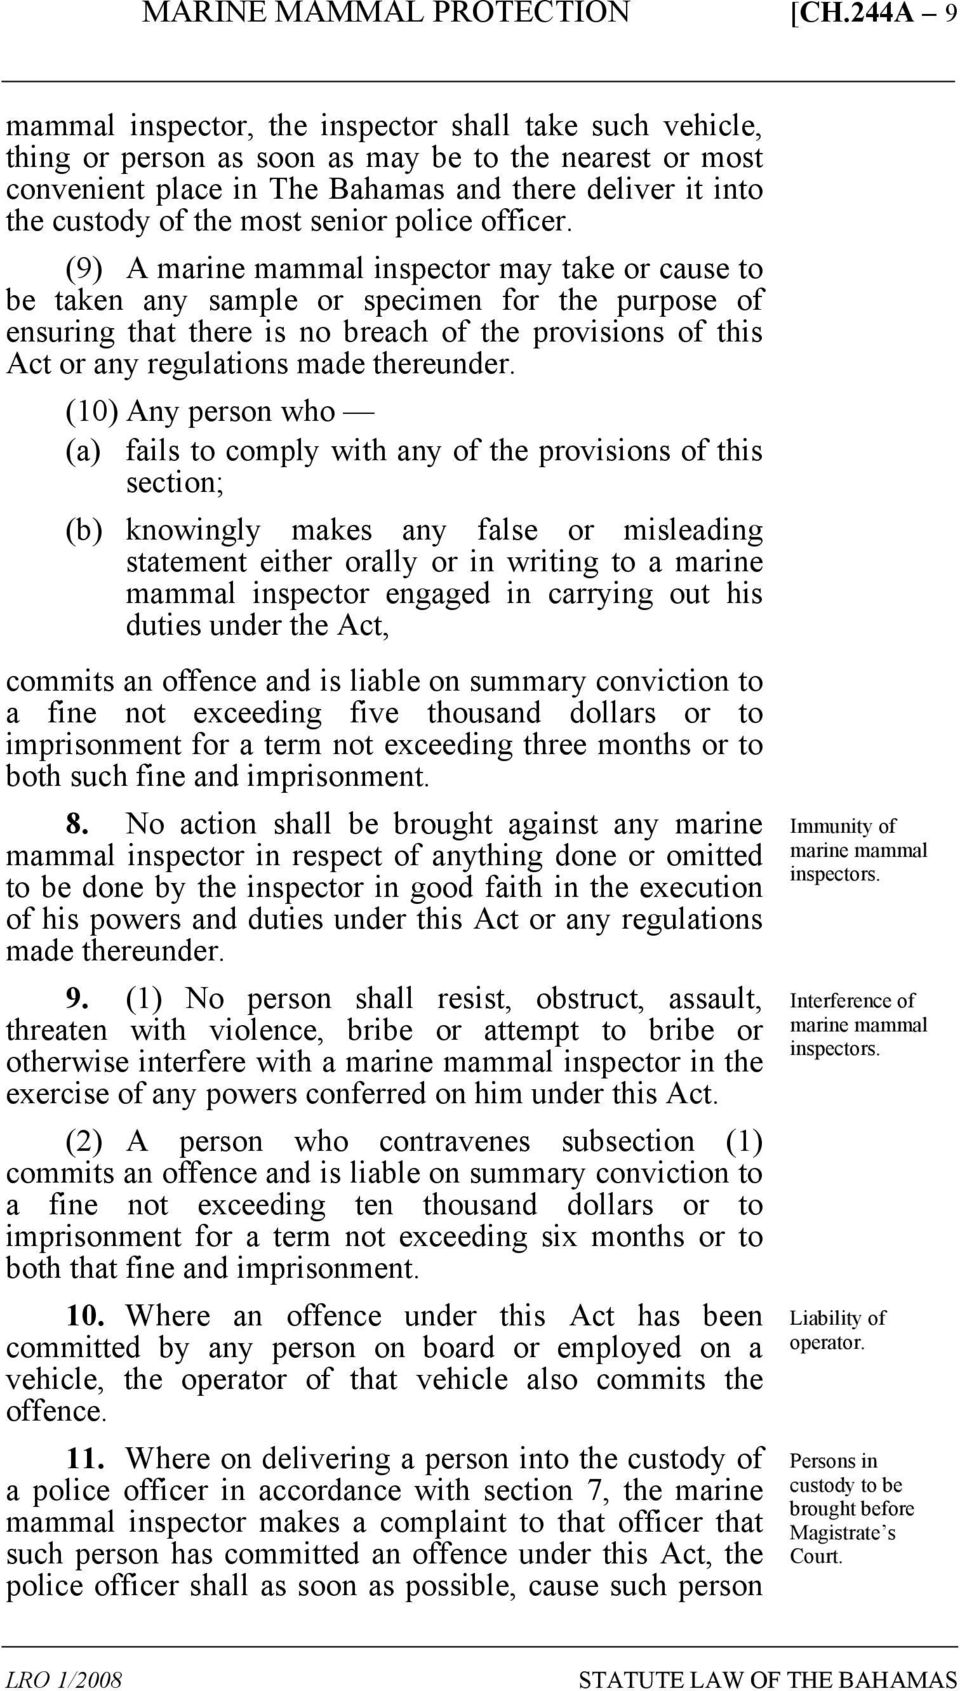 (9) A marine mammal inspector may take or cause to be taken any sample or specimen for the purpose of ensuring that there is no breach of the provisions of this Act or any regulations made thereunder.